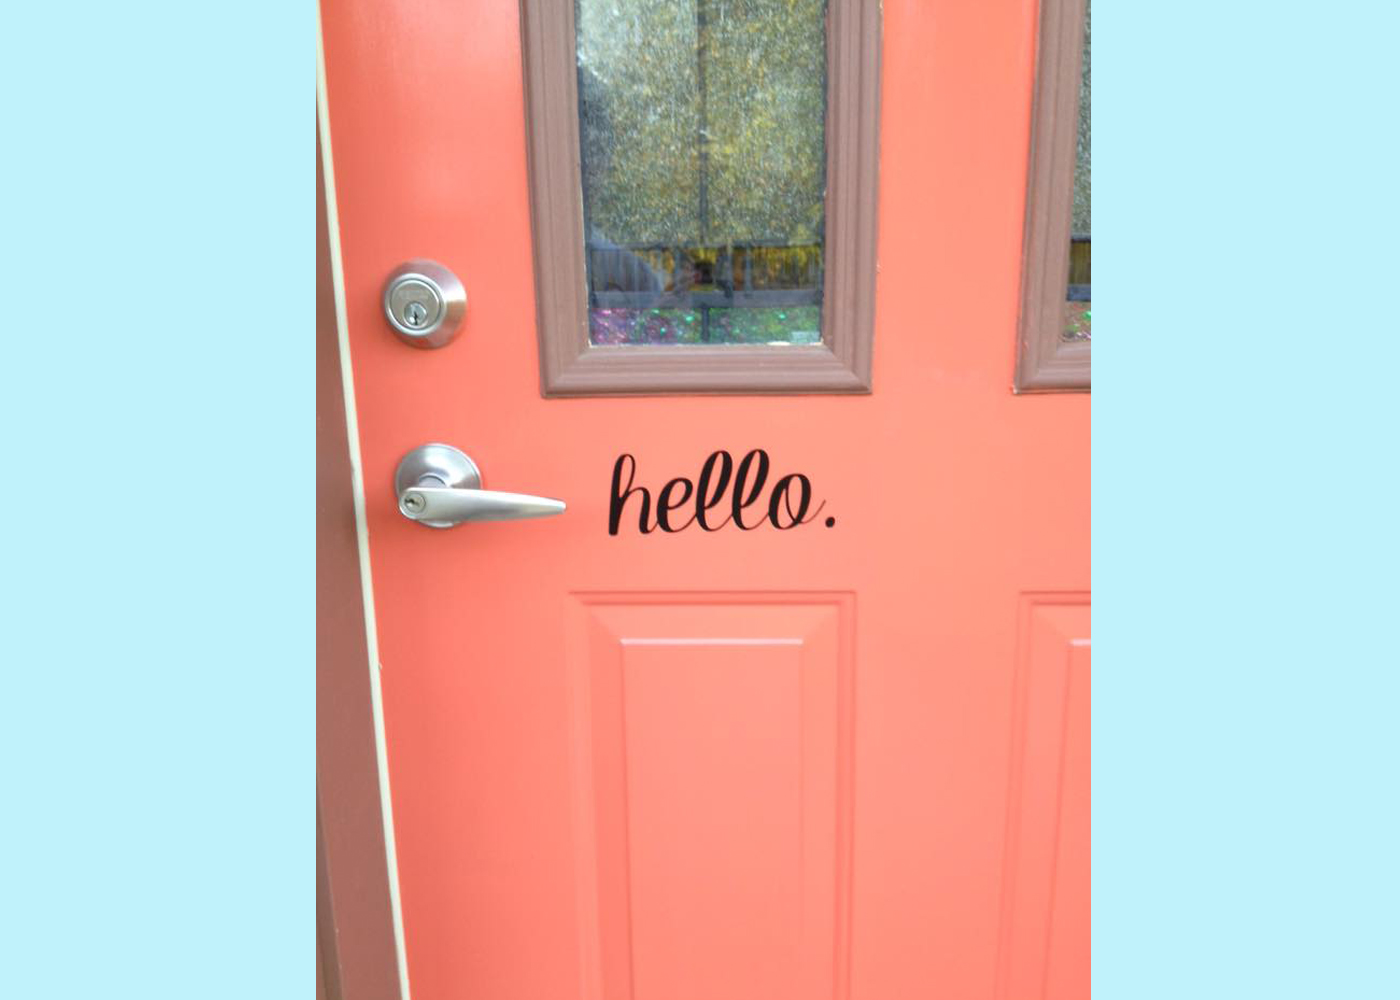 hello-wall-decal-sticker-on-the-front-door.jpg